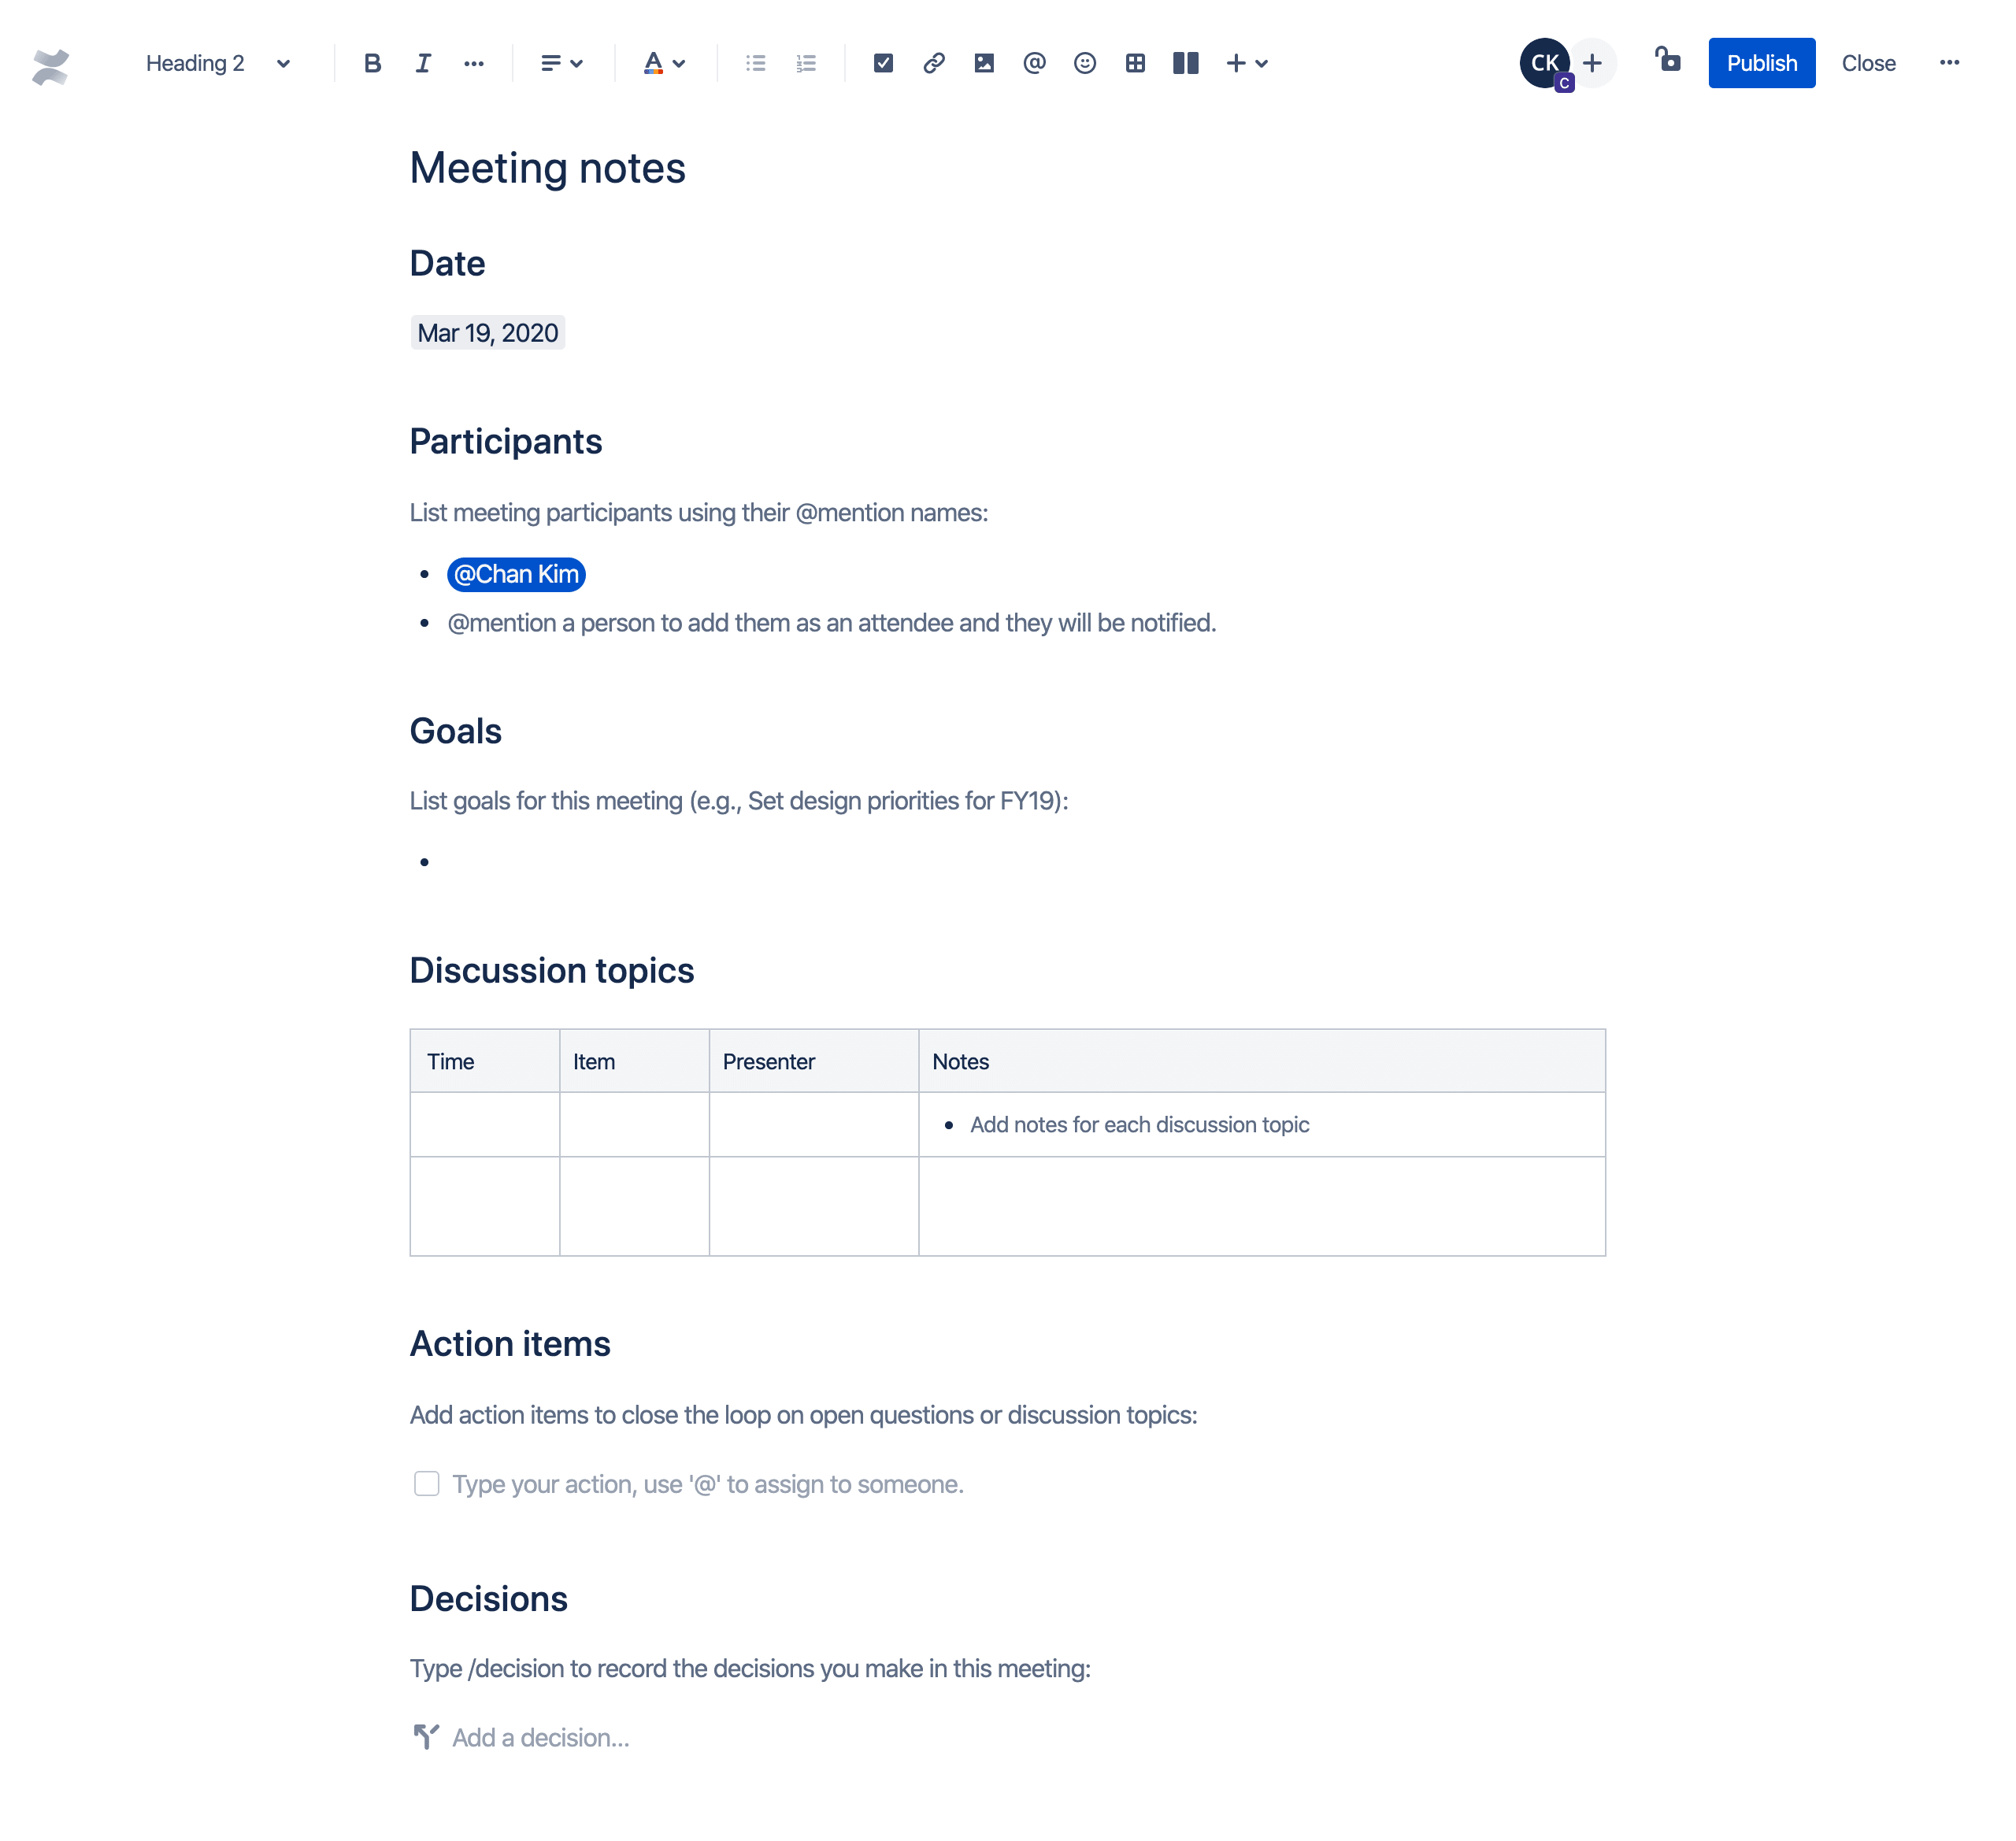 Meeting notes template